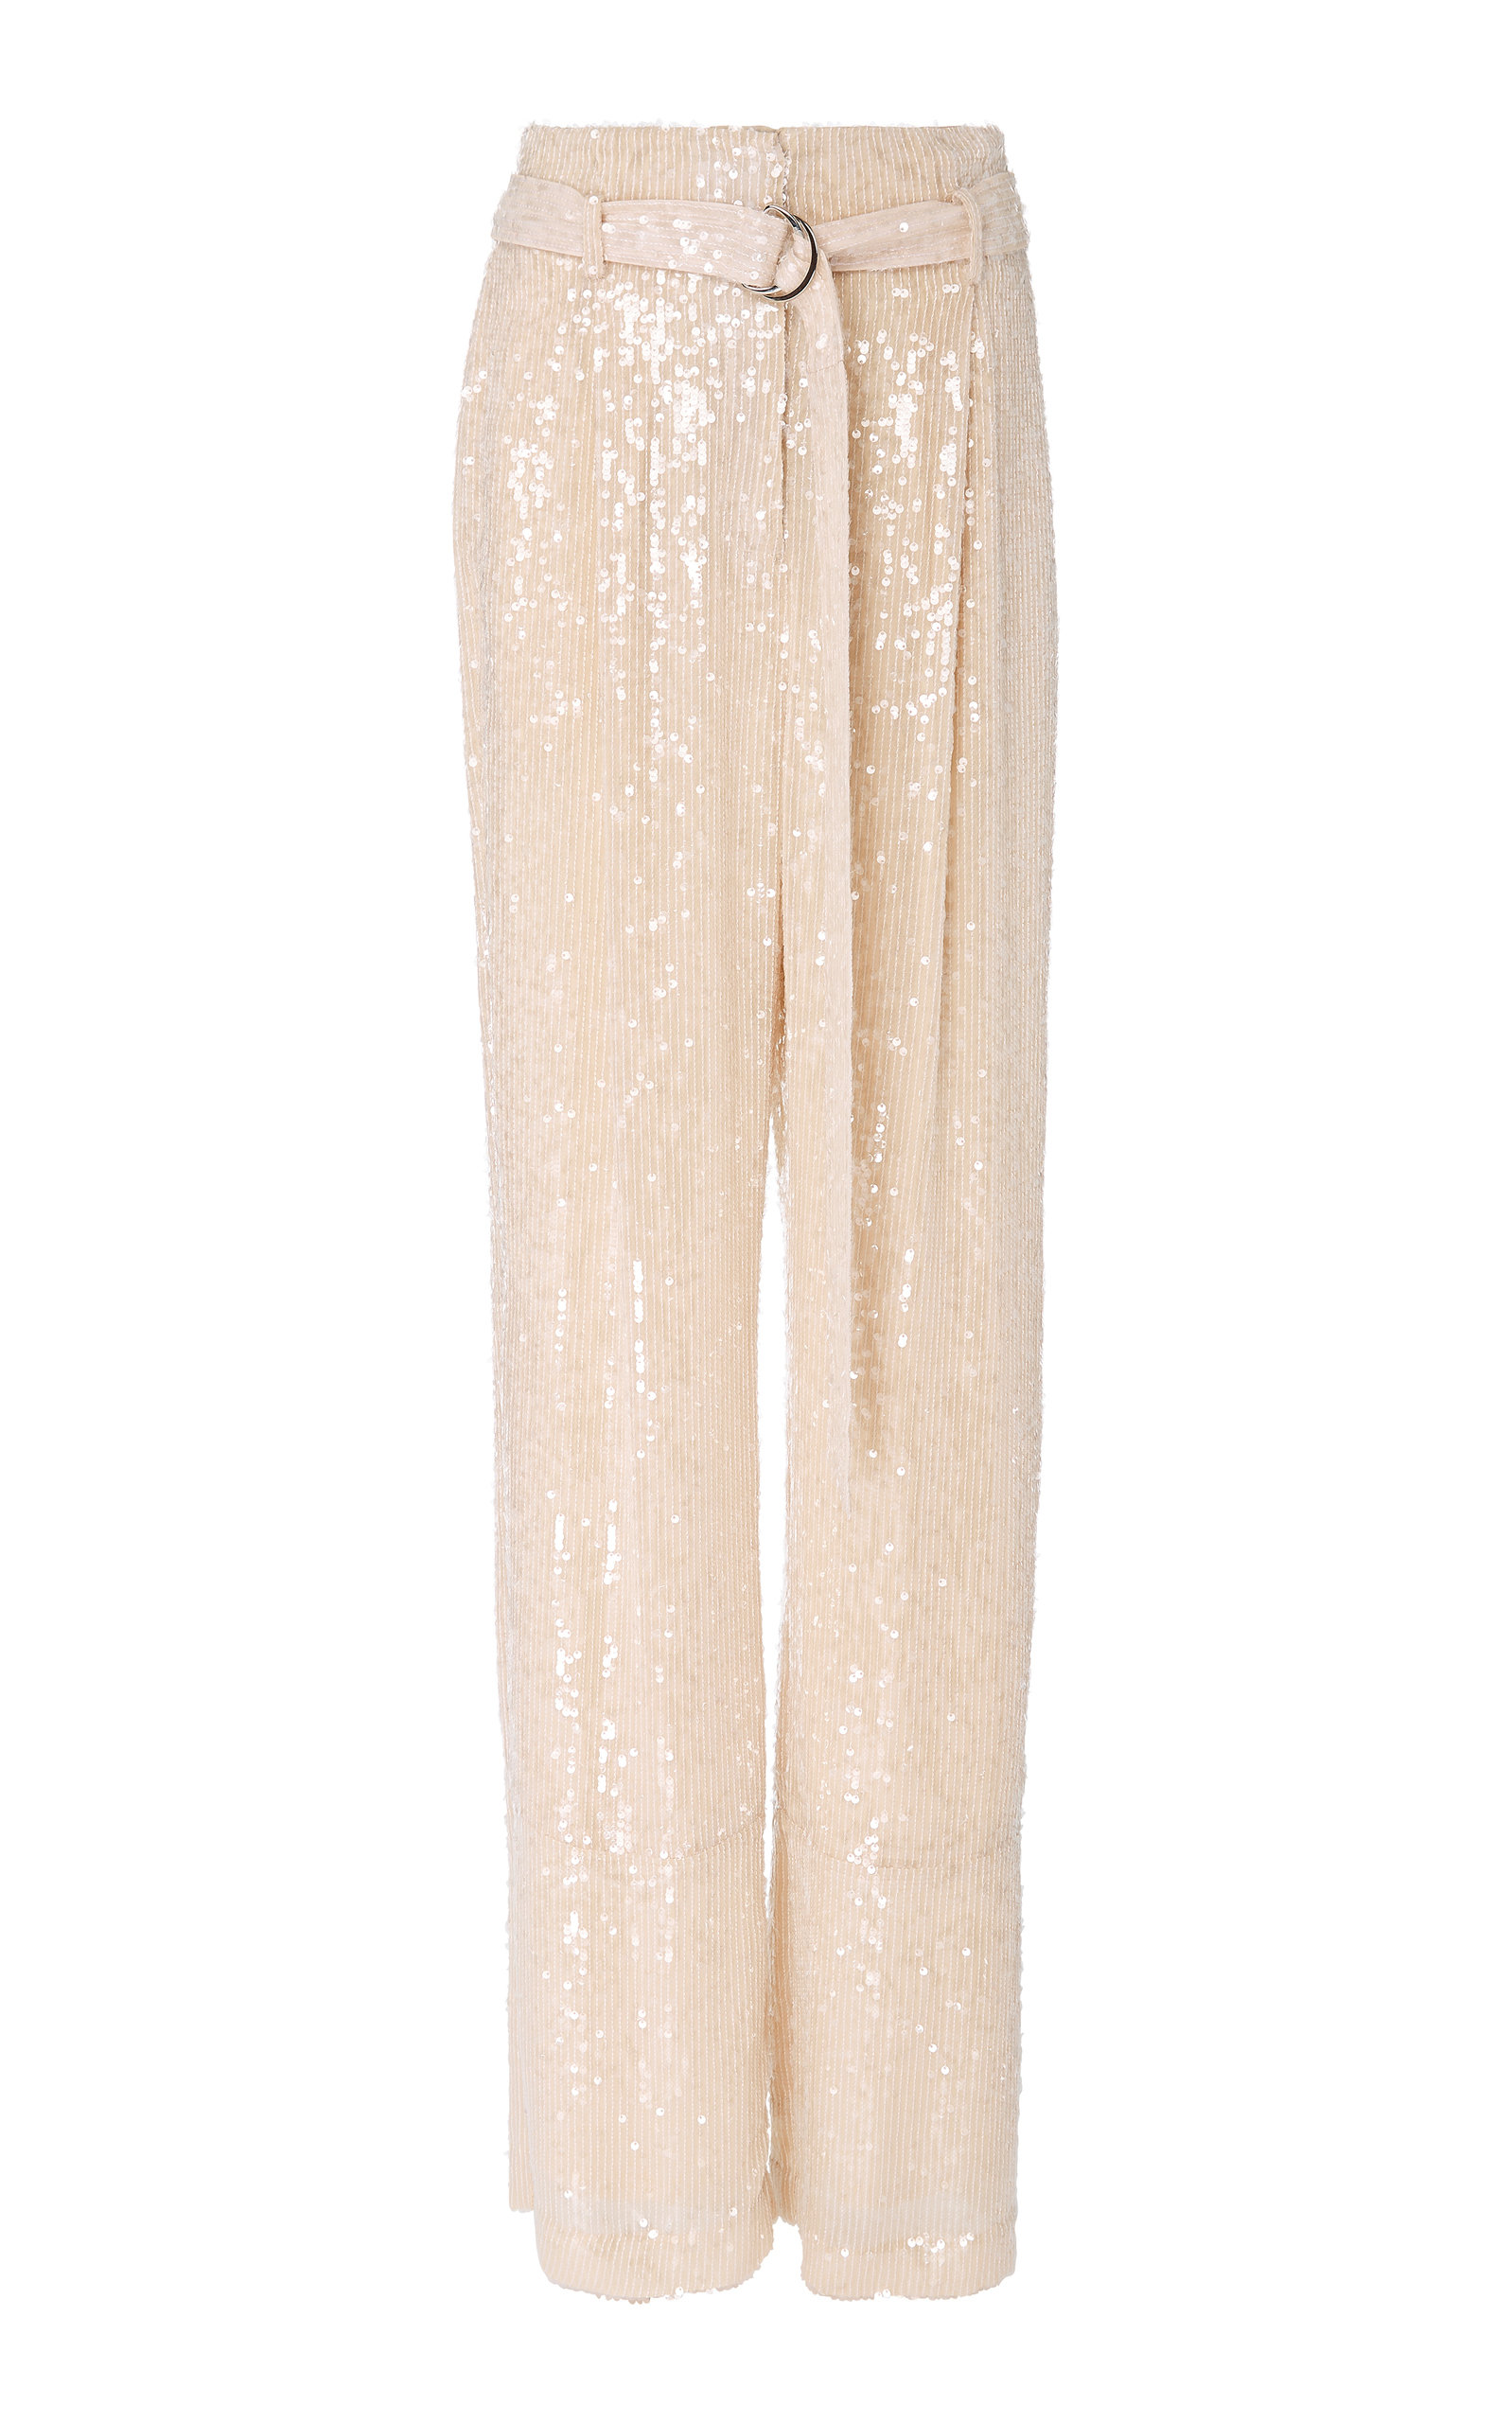 576d59a4690d9 Sally LaPointe M O Exclusive Belted Sequined Wide-Leg Pants ...